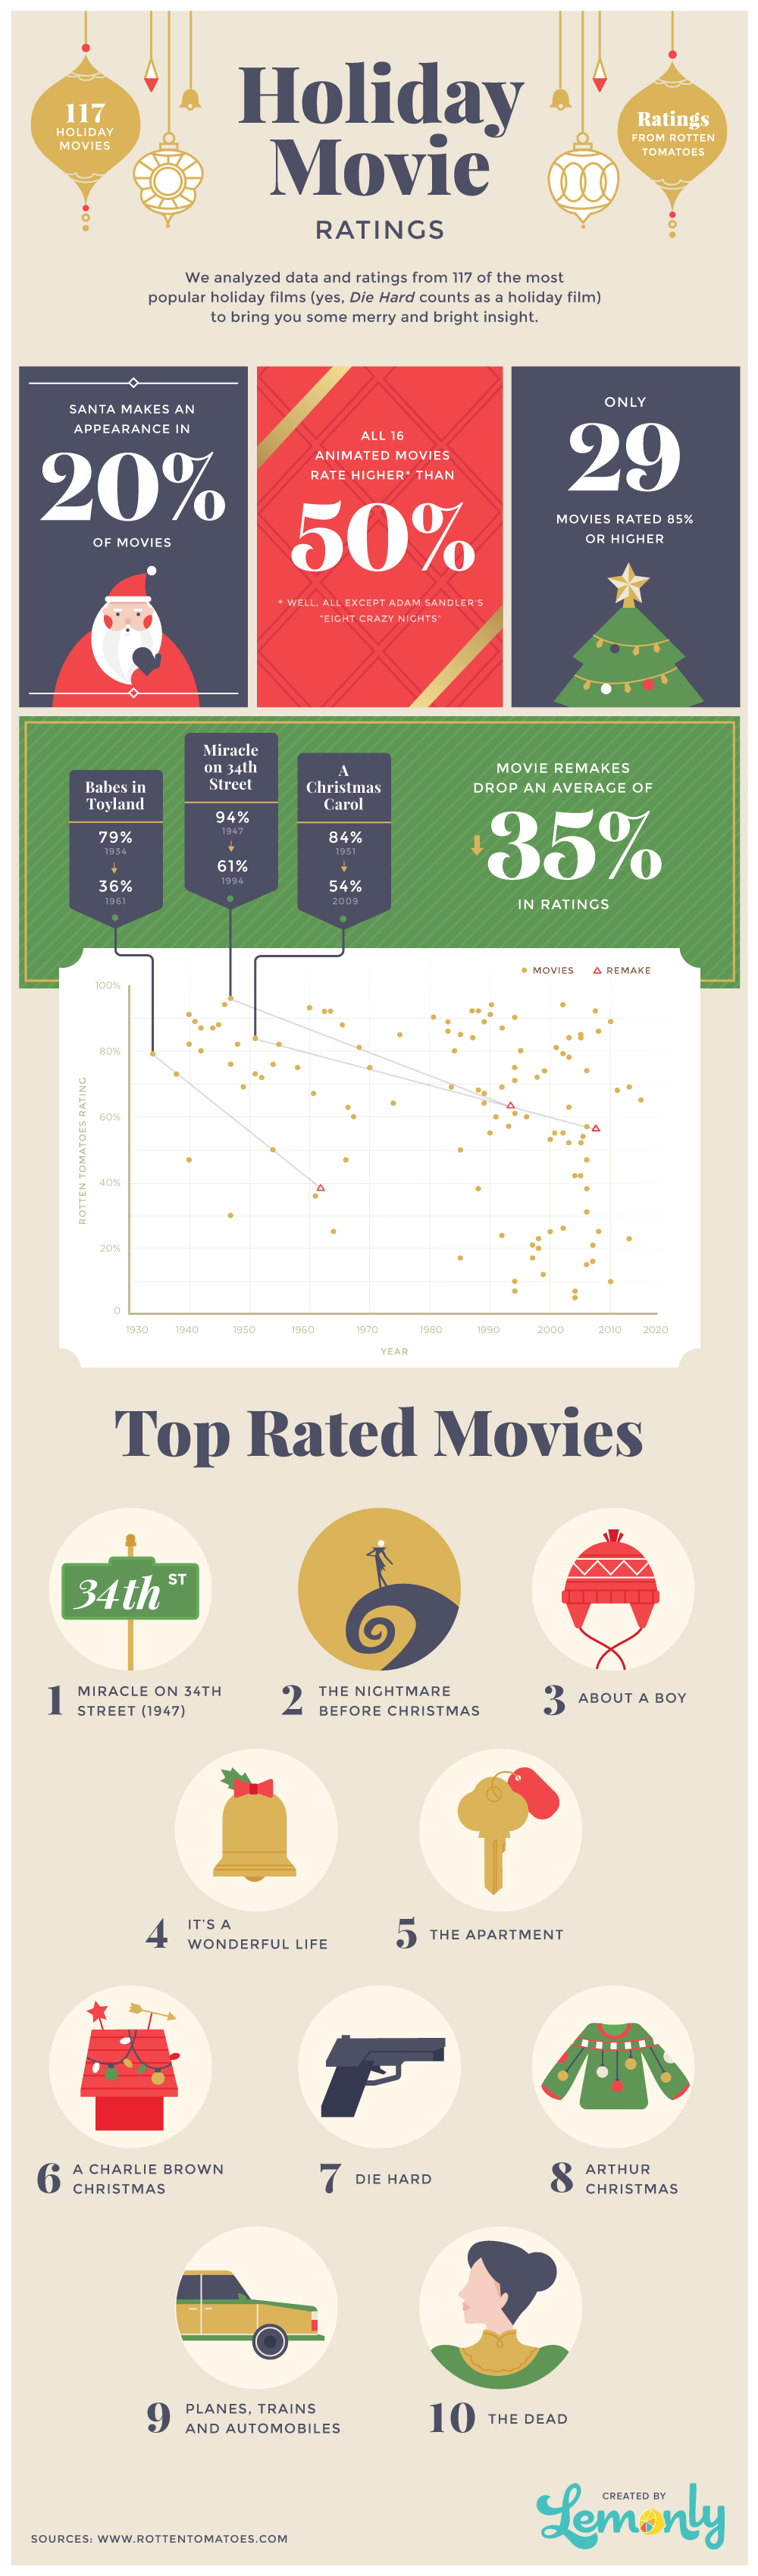 Holiday Movie Ratings